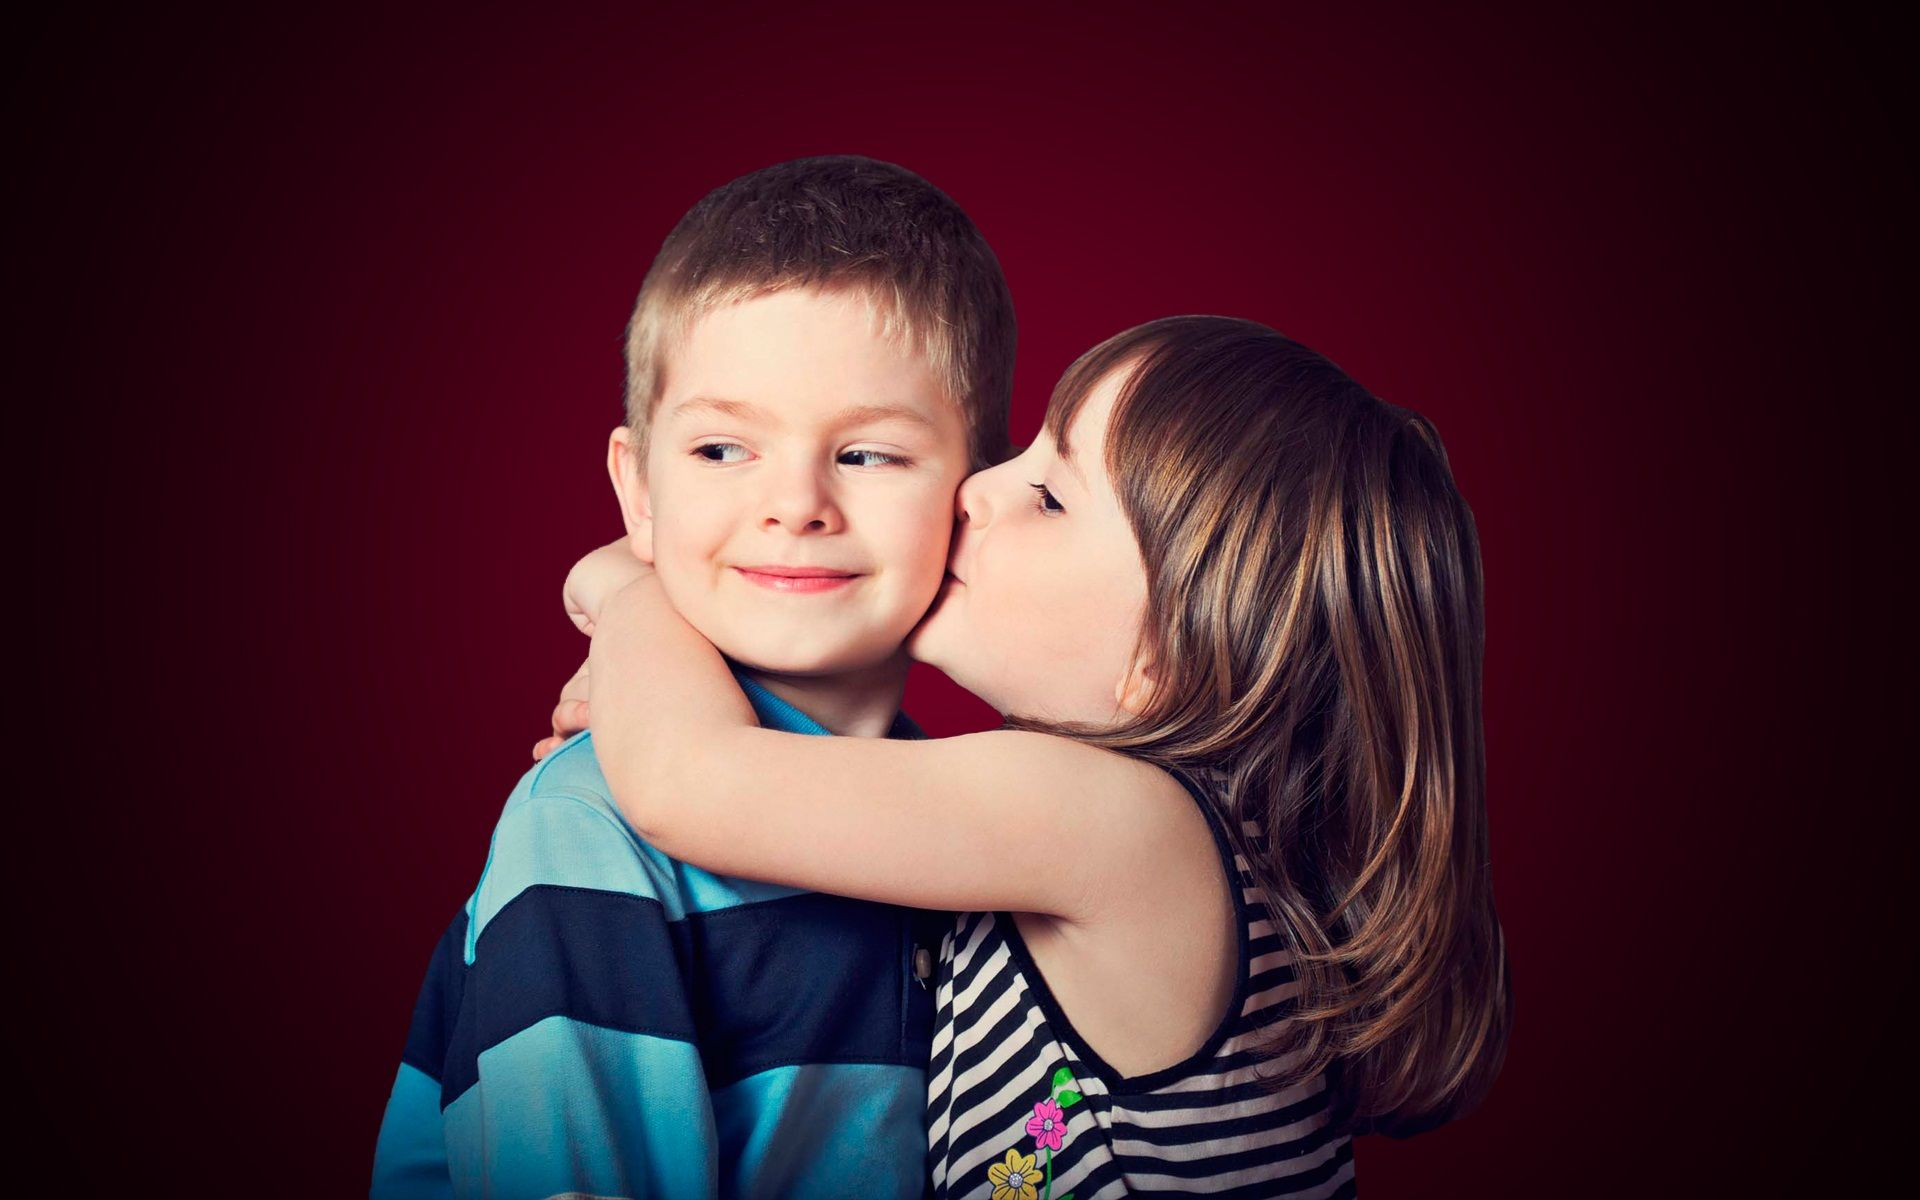 little cute baby hug and kissing | beautiful hd wallpaper | adorable